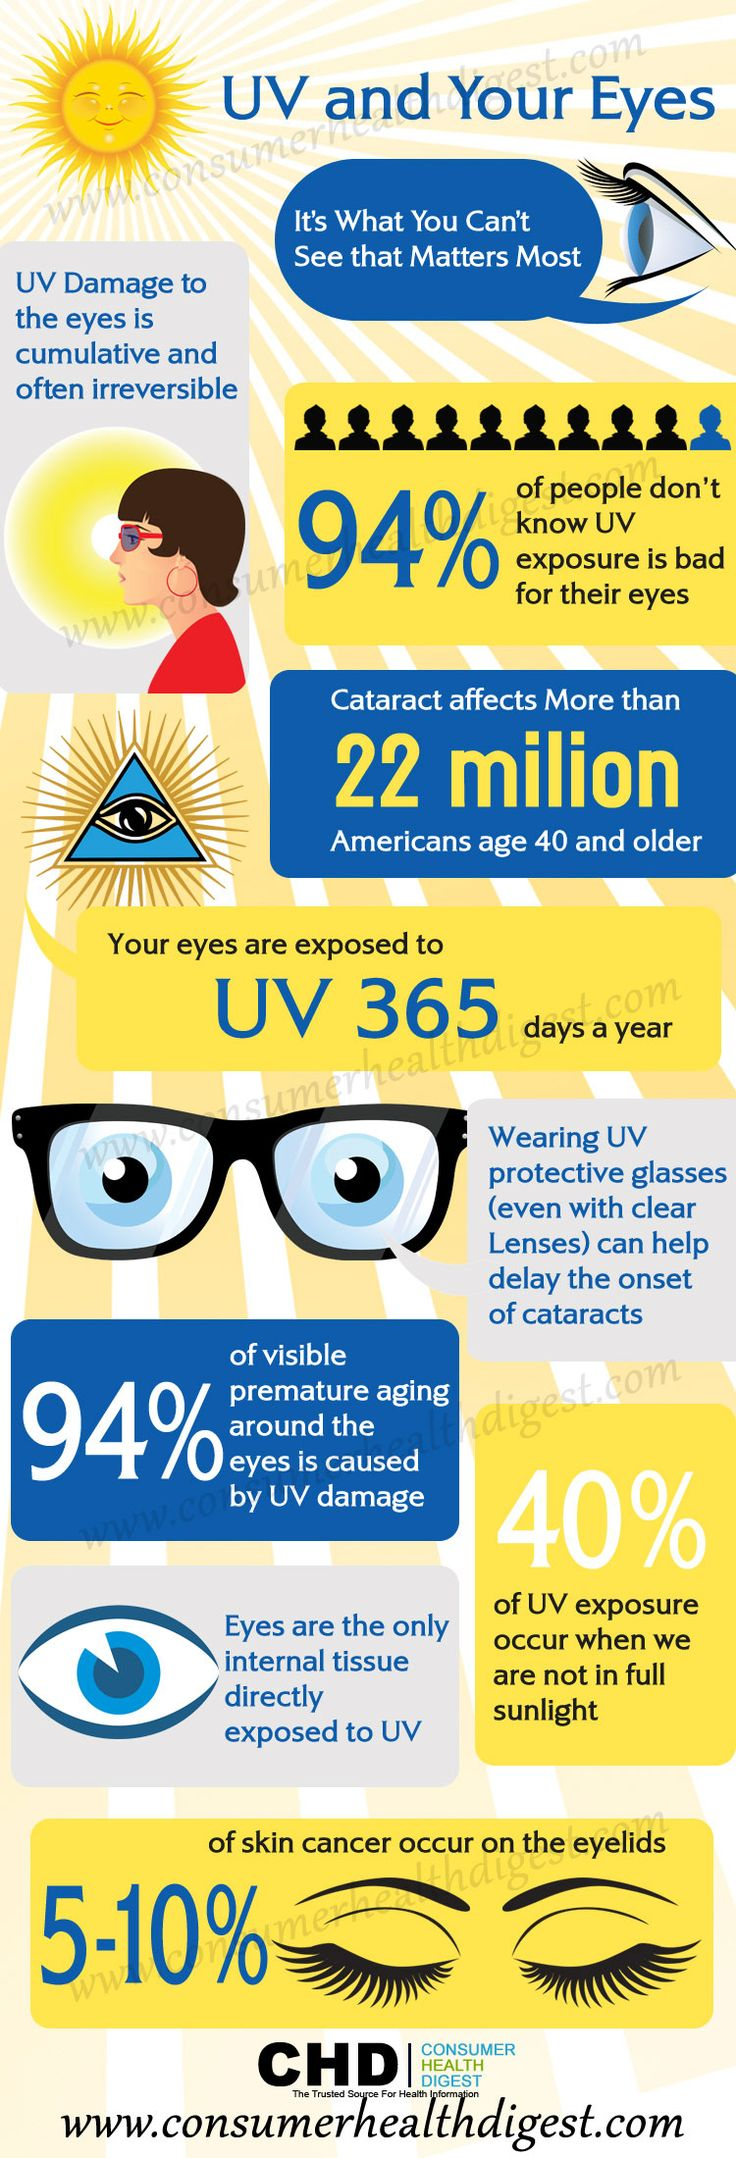 It's getting warmer which means you'll be out in the sun more. Protect your eyes!